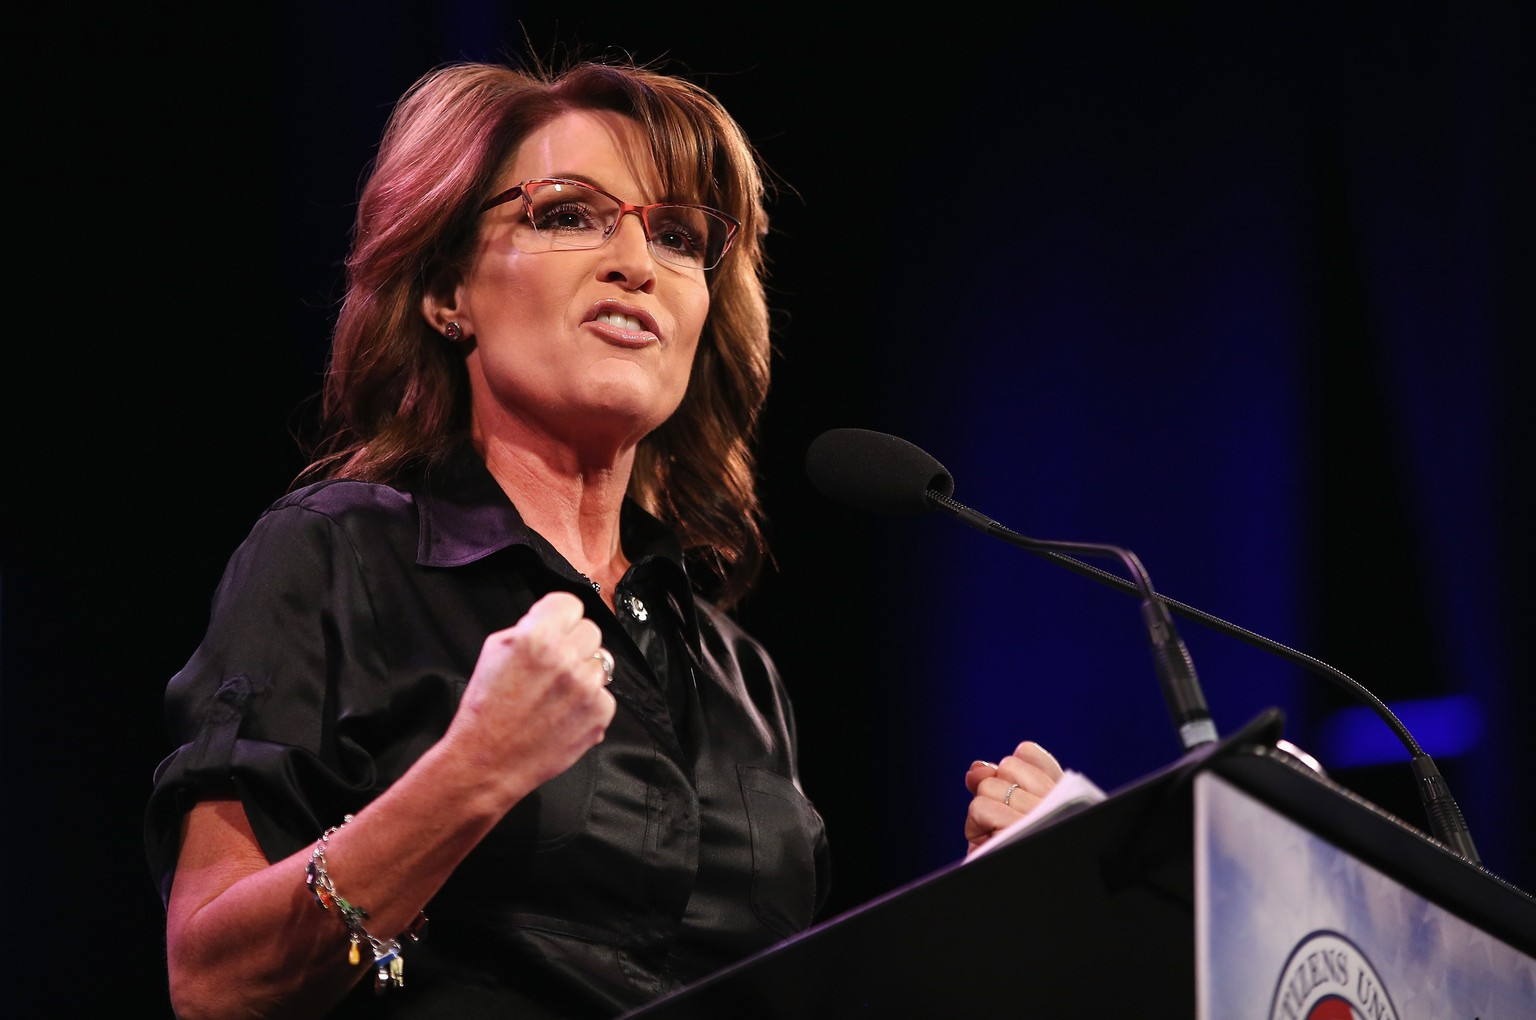 DES MOINES, IA - JANUARY 24: Former Alaska Governor Sarah Palin speaks to guests at the Iowa Freedom Summit on January 24, 2015 in Des Moines, Iowa. The summit is hosting a group of potential 2016 Republican presidential candidates to discuss core conservative principles ahead of the January 2016 Iowa Caucuses.   Scott Olson/Getty Images/AFP == FOR NEWSPAPERS, INTERNET, TELCOS & TELEVISION USE ONLY ==